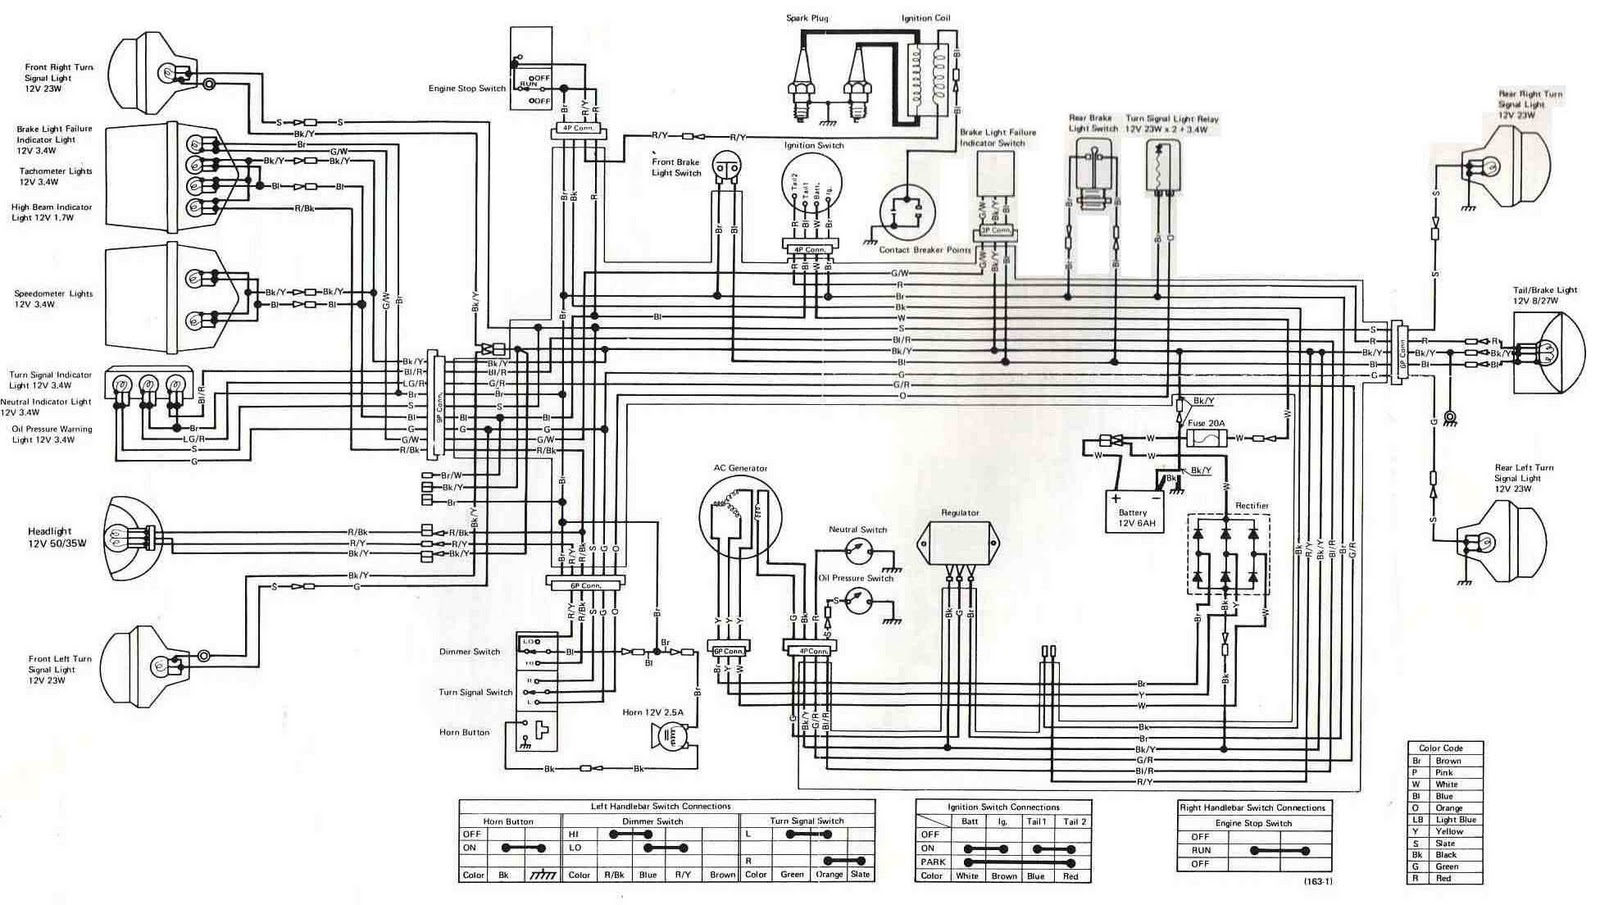 Kawasaki+KZ400+1975+Electrical+Wiring+Diagram kawasaki wiring diagram free toyota wiring diagrams \u2022 wiring kawasaki mule 600 wiring diagram at panicattacktreatment.co